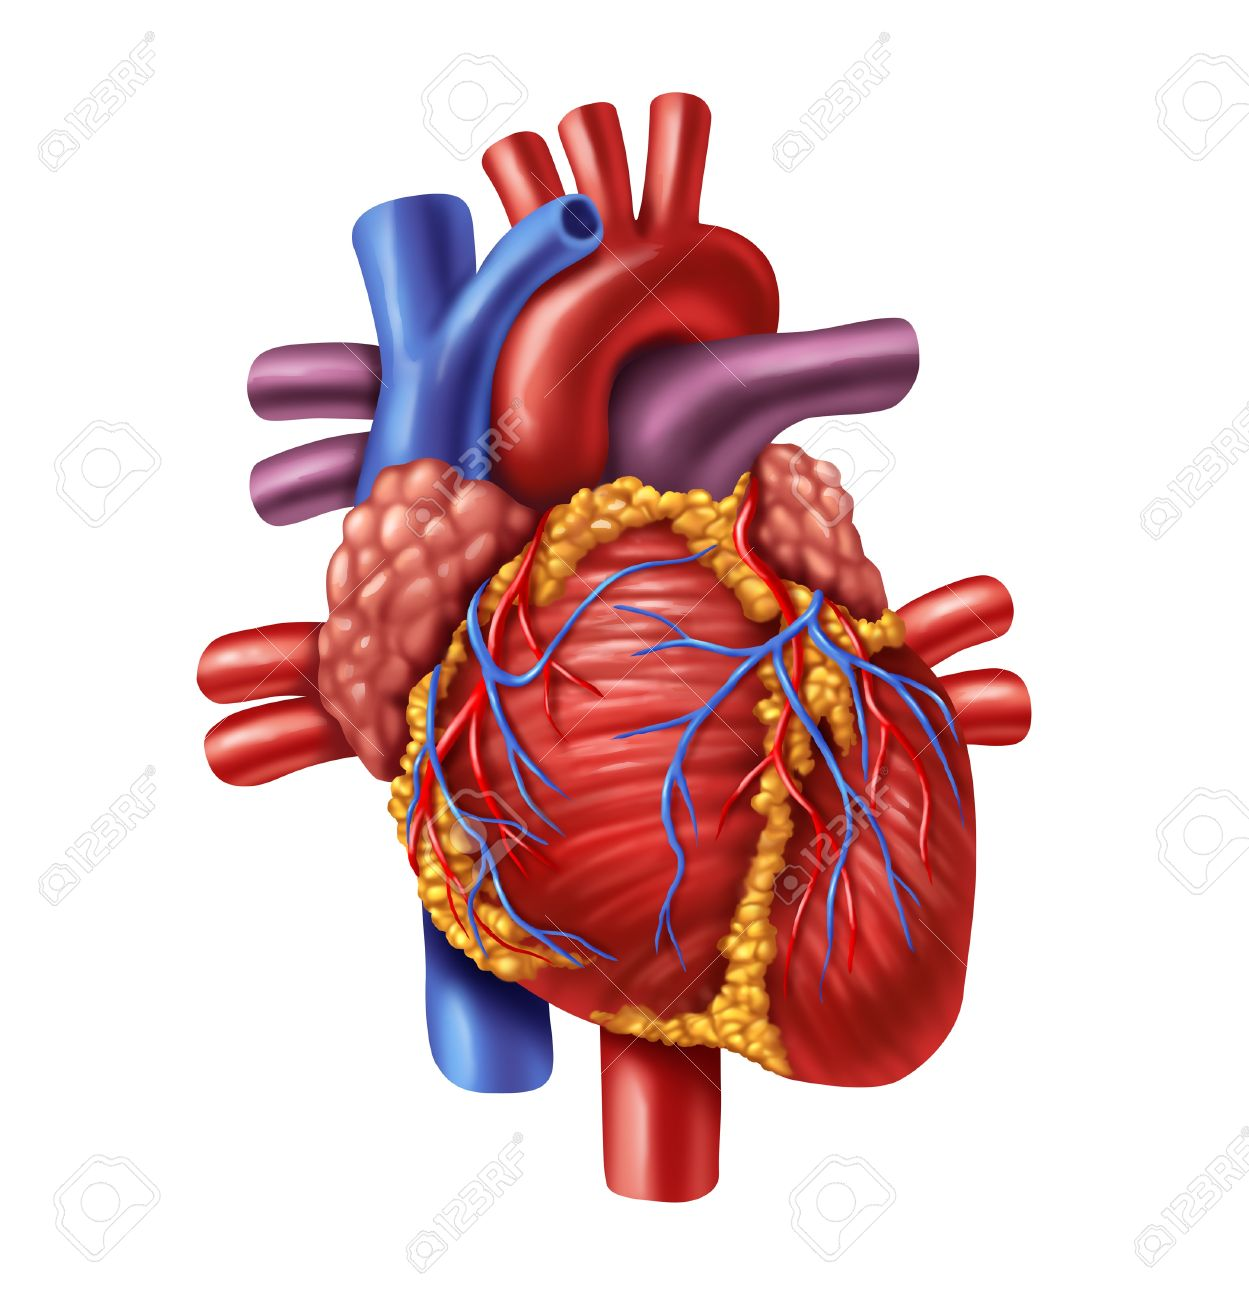 anatomy heart images & stock pictures. royalty free anatomy heart, Human Body